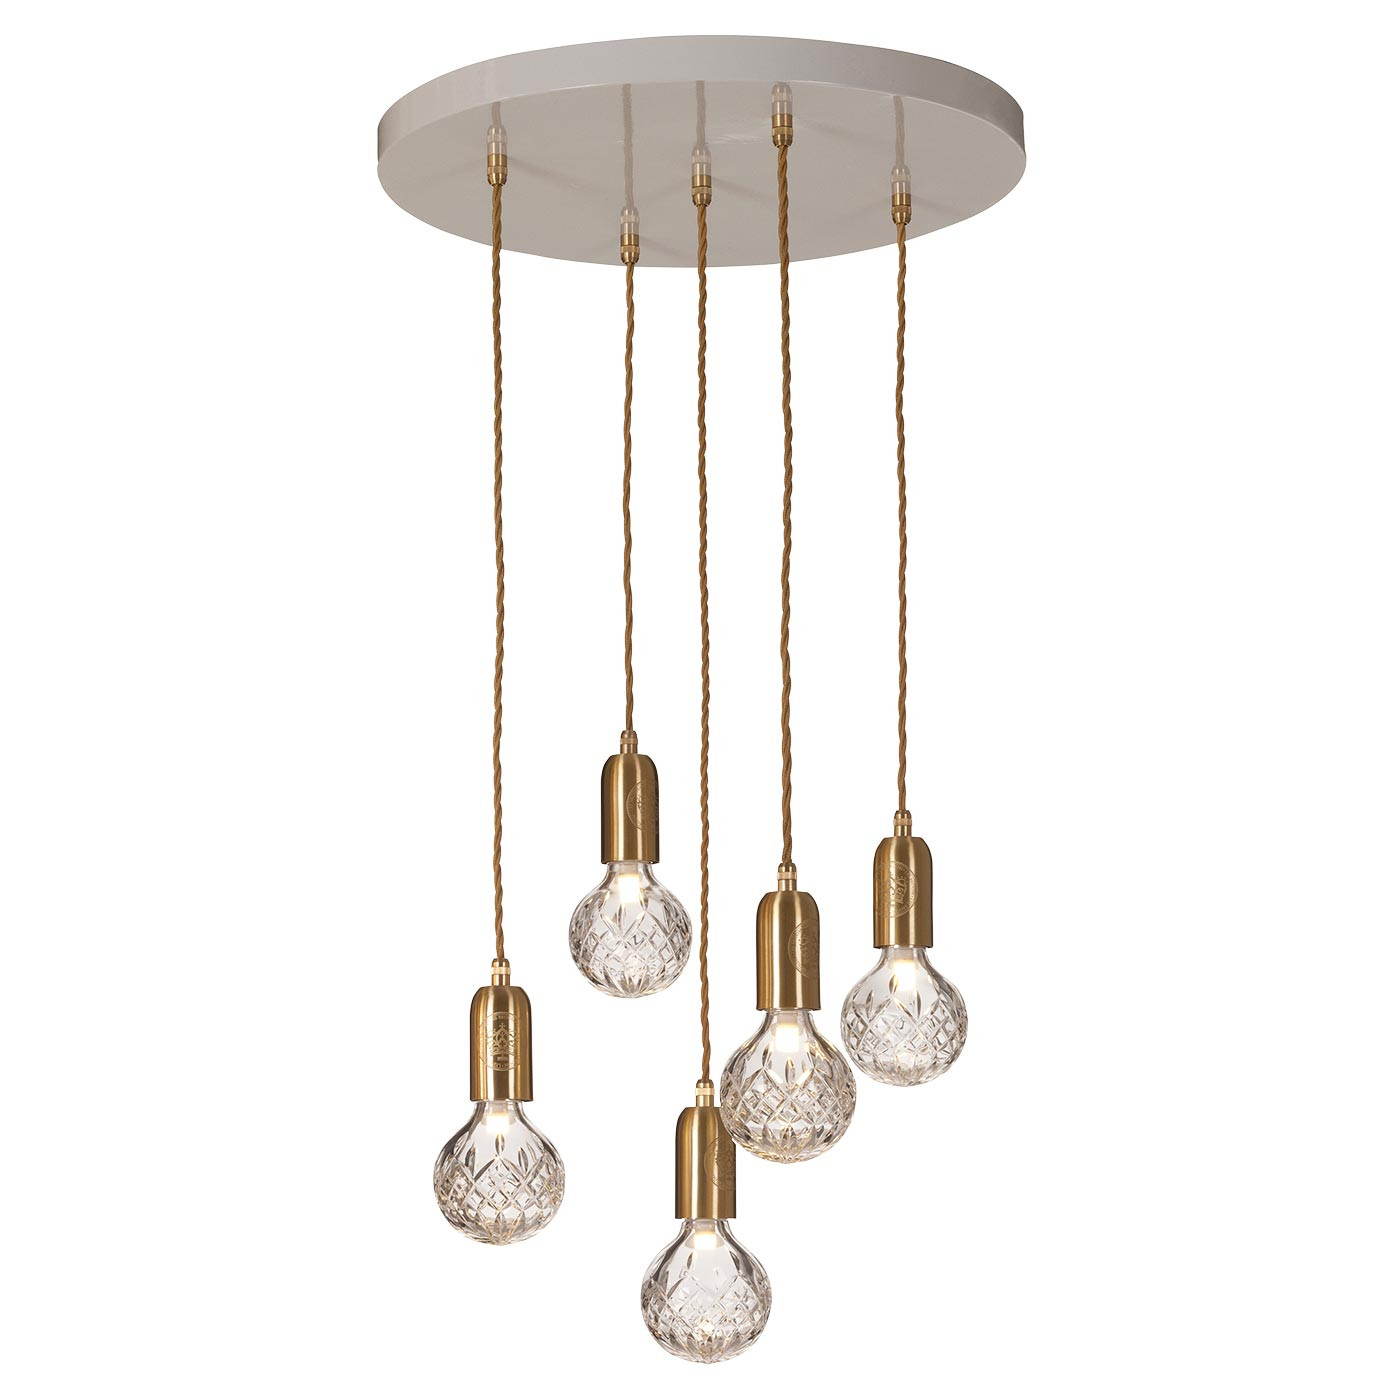 Lee Broom Crystal Bulb 5 Pendelleuchte